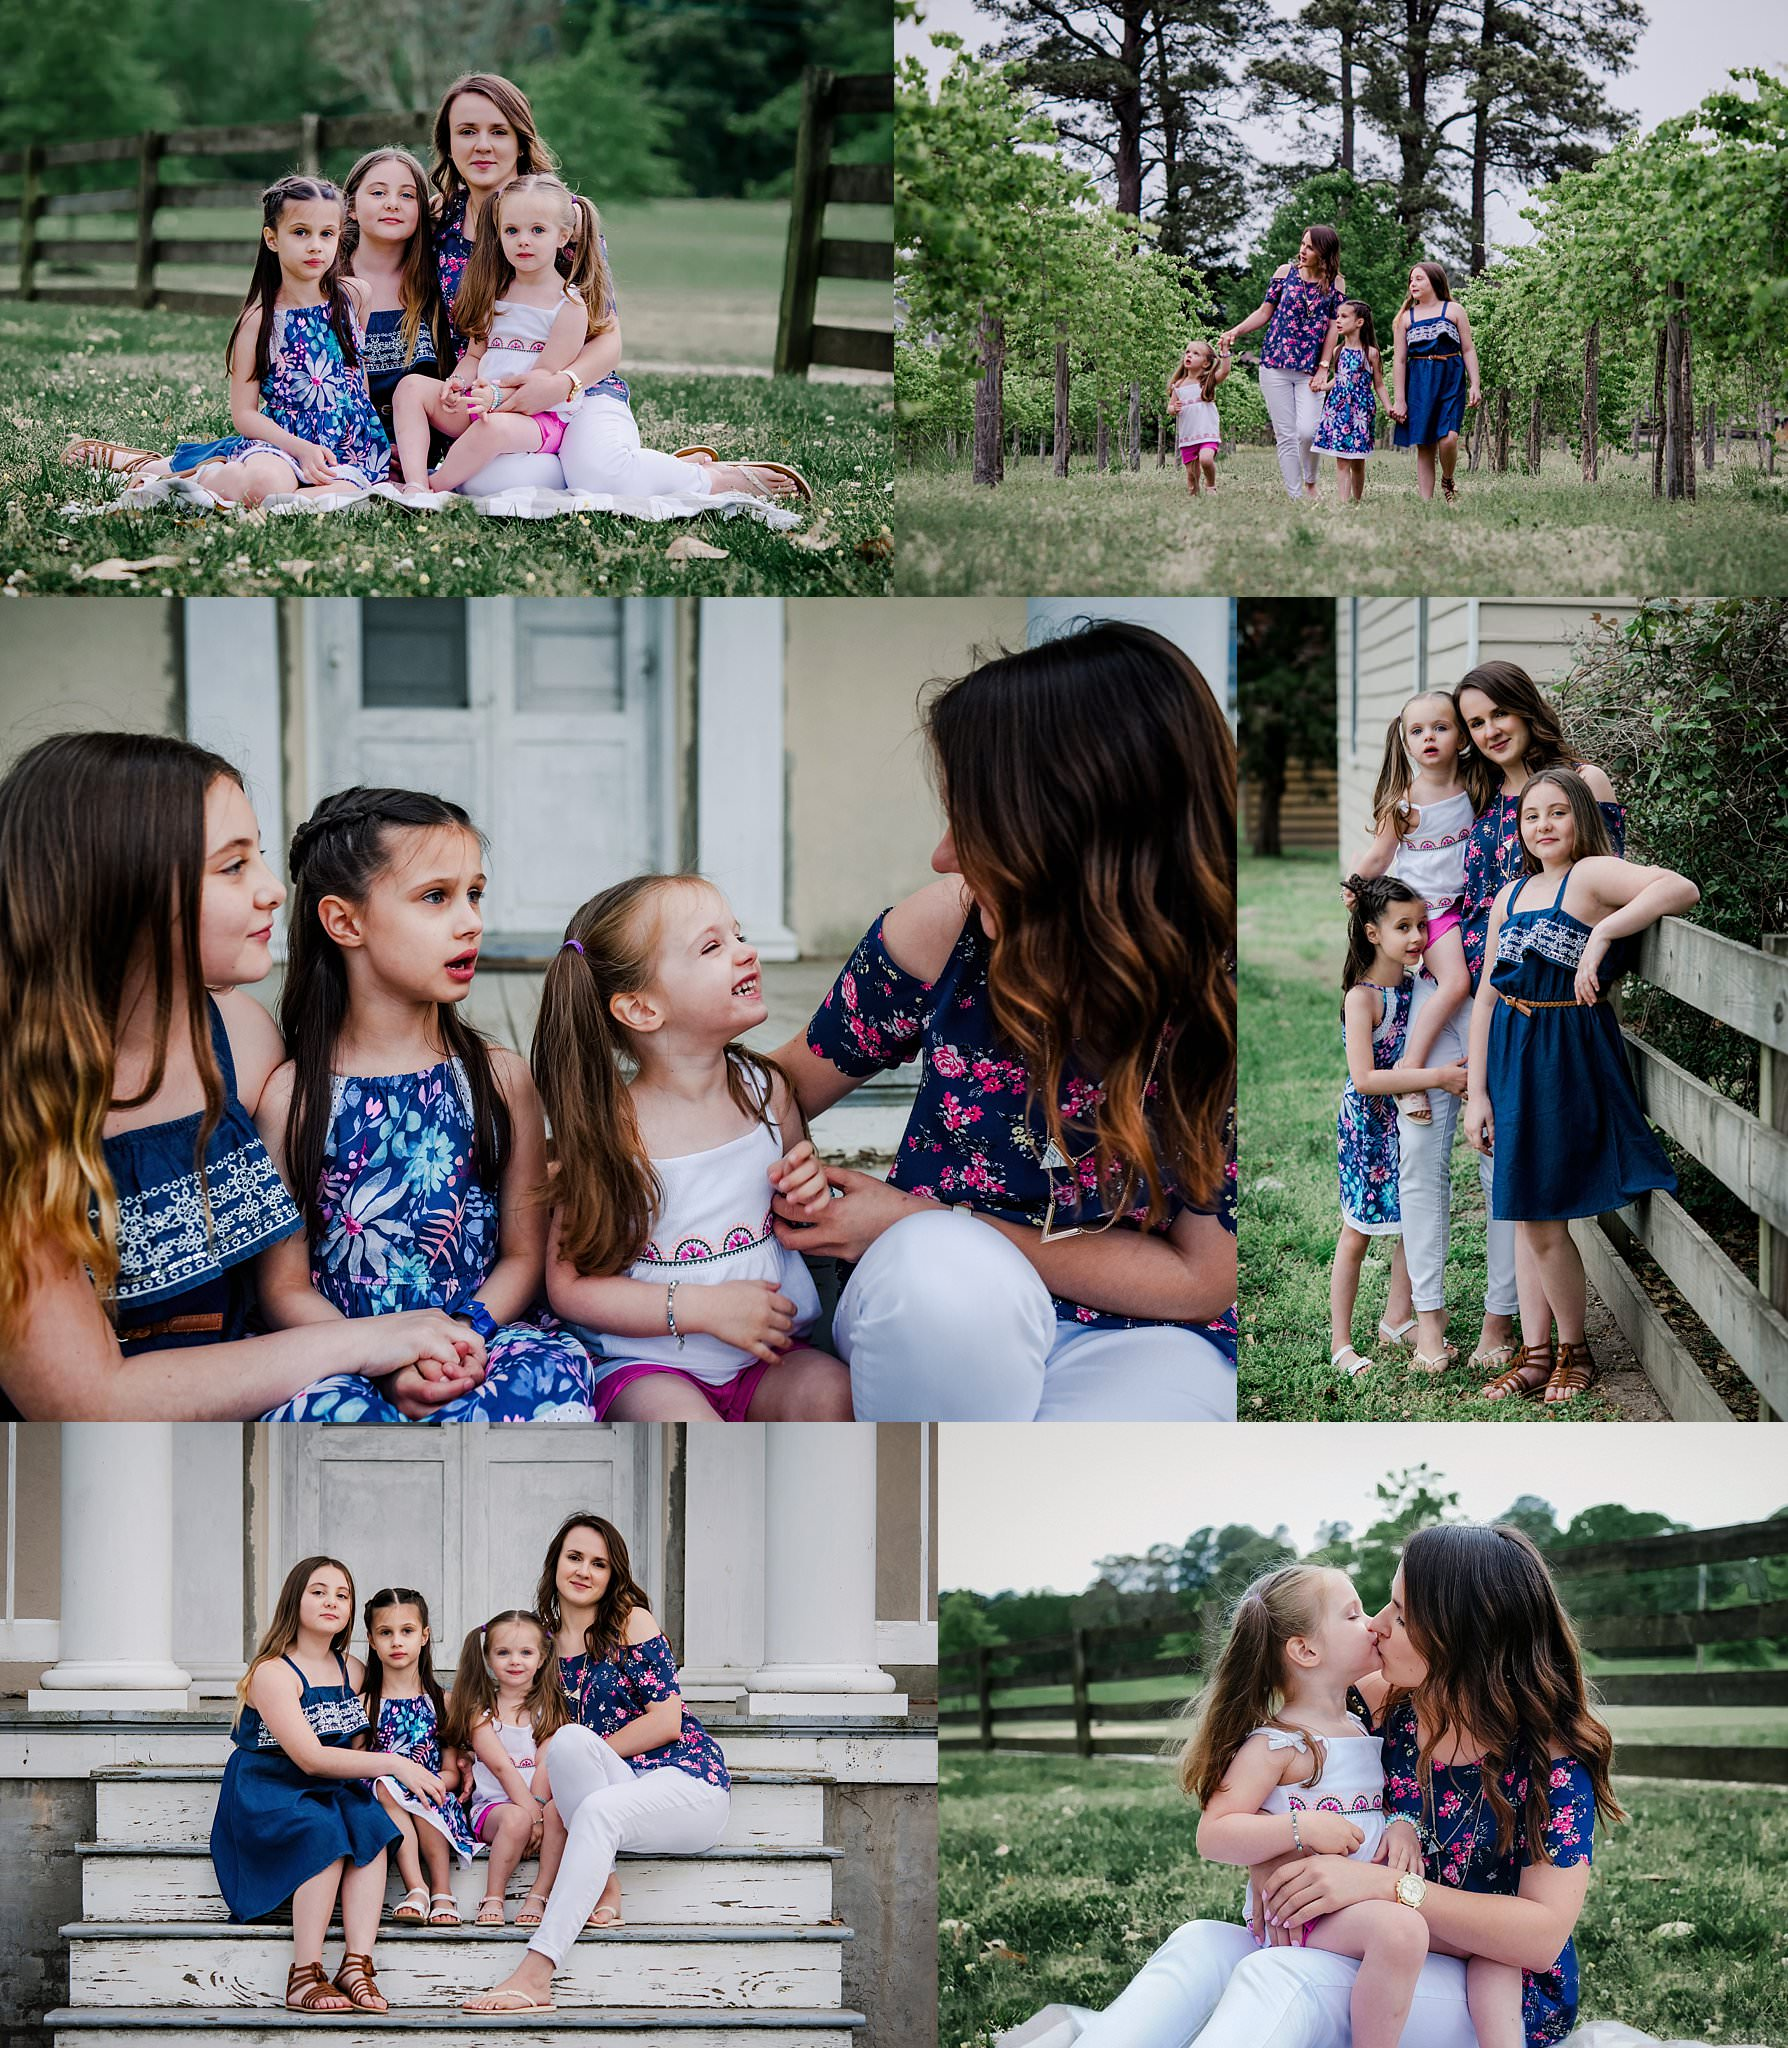 lifestyle-family-photos-melissa-bliss-photography-chesapeake-va.jpg